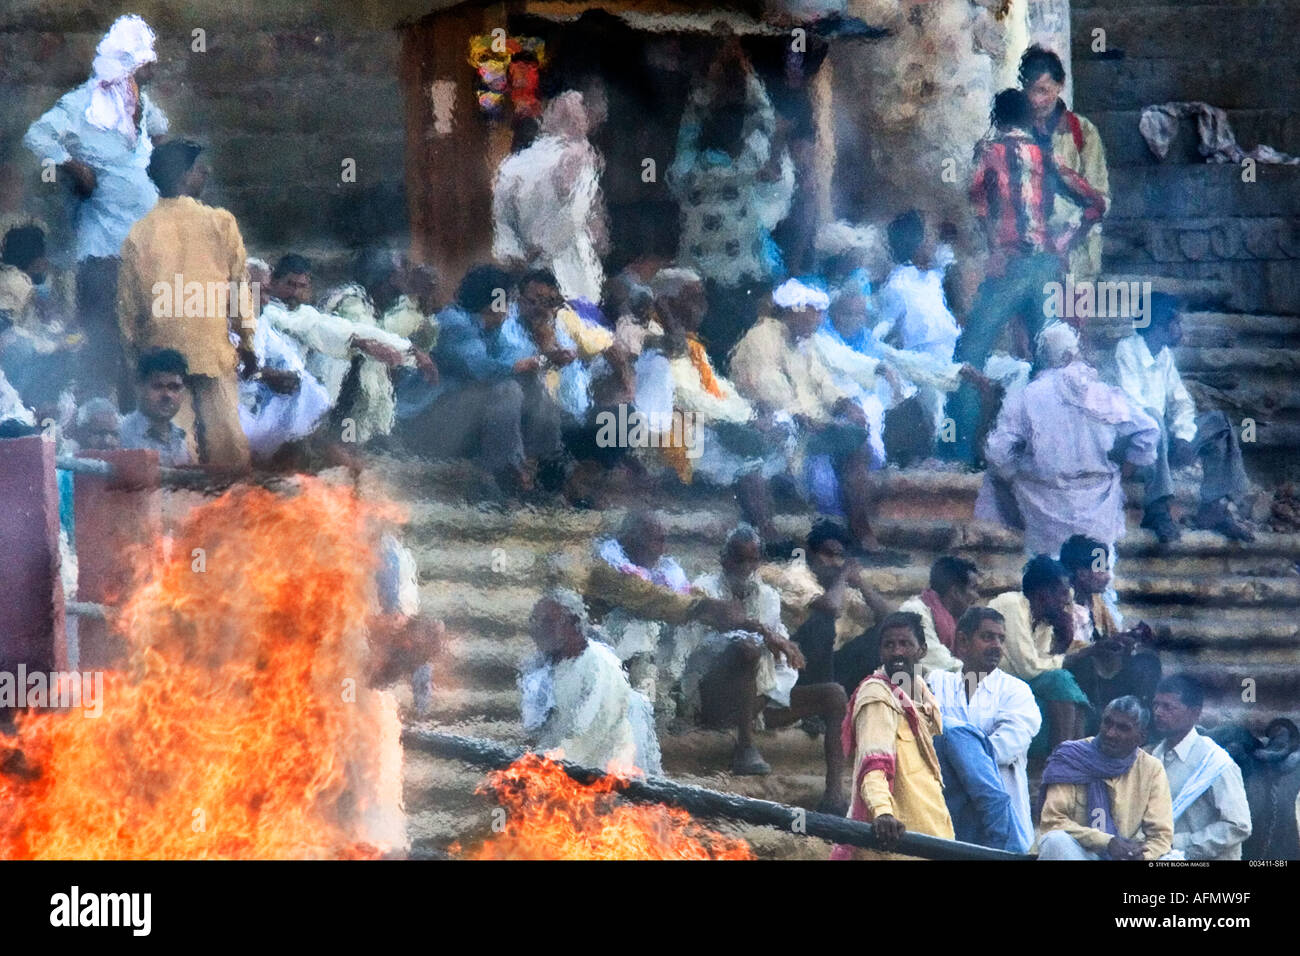 Crowds at a funeral pyre on the banks of the Ganges Varanasi India - Stock Image